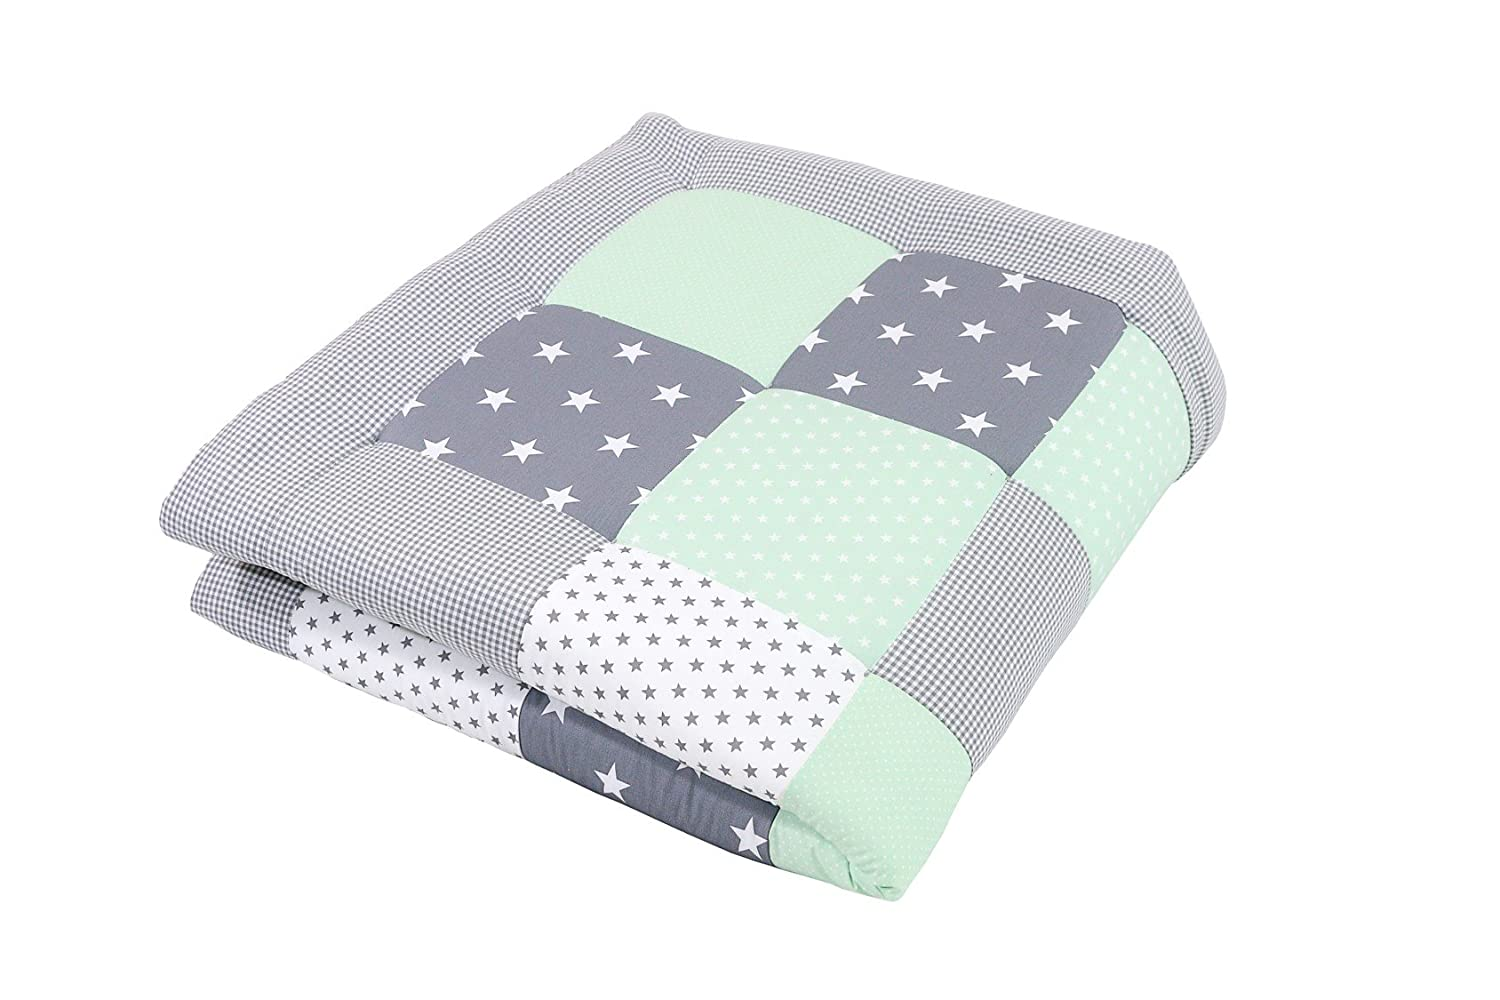 120 x 120 cm ULLENBOOM ® baby playmat – mint grey (120 x 120 cm baby comforter blanket, great in the pushchair or as a playmat; motifs  stars)